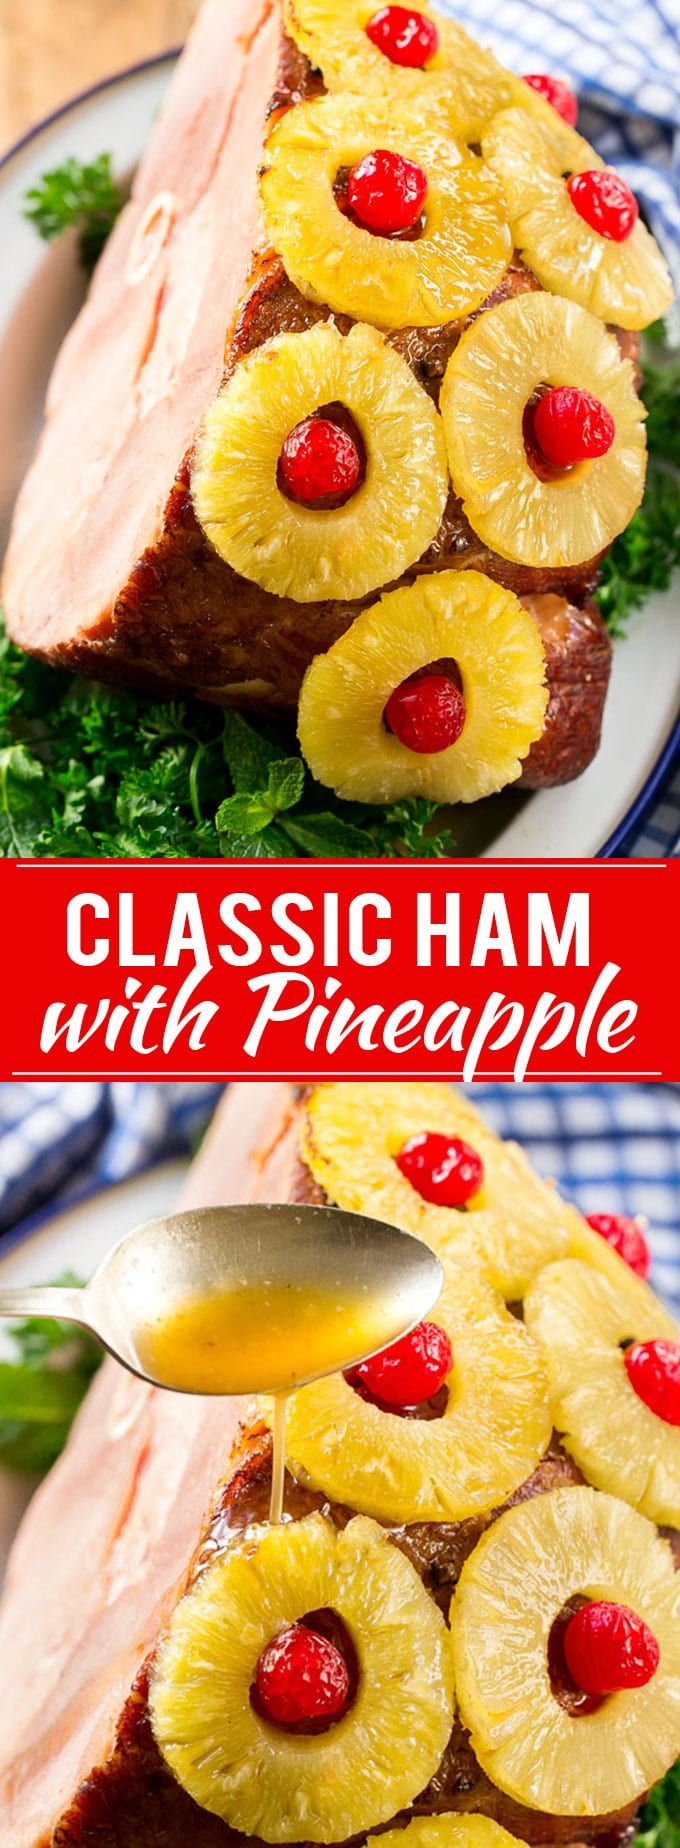 Ham with Pineapple and Cherries Recipe | Easter Ham | Christmas Ham | Holiday Ham | Pineapple Ham Recipe